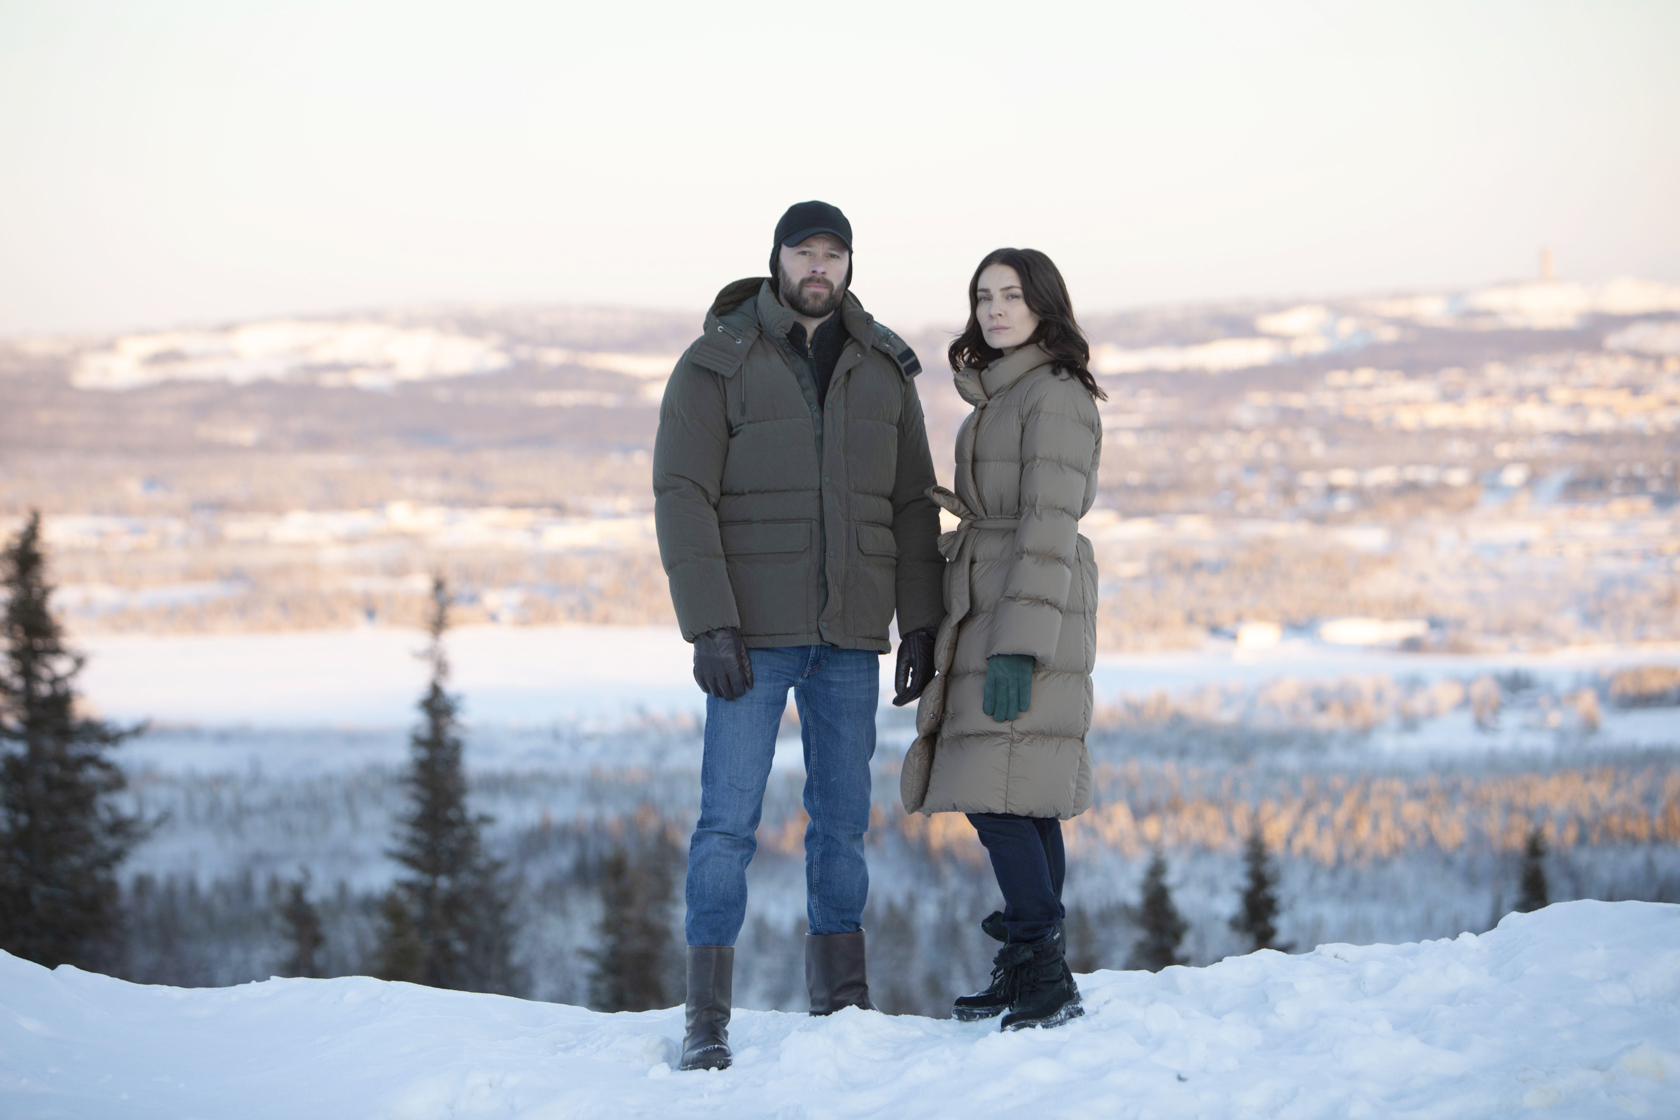 First trailer released for Beartown (Björnstad) – The Killing Times